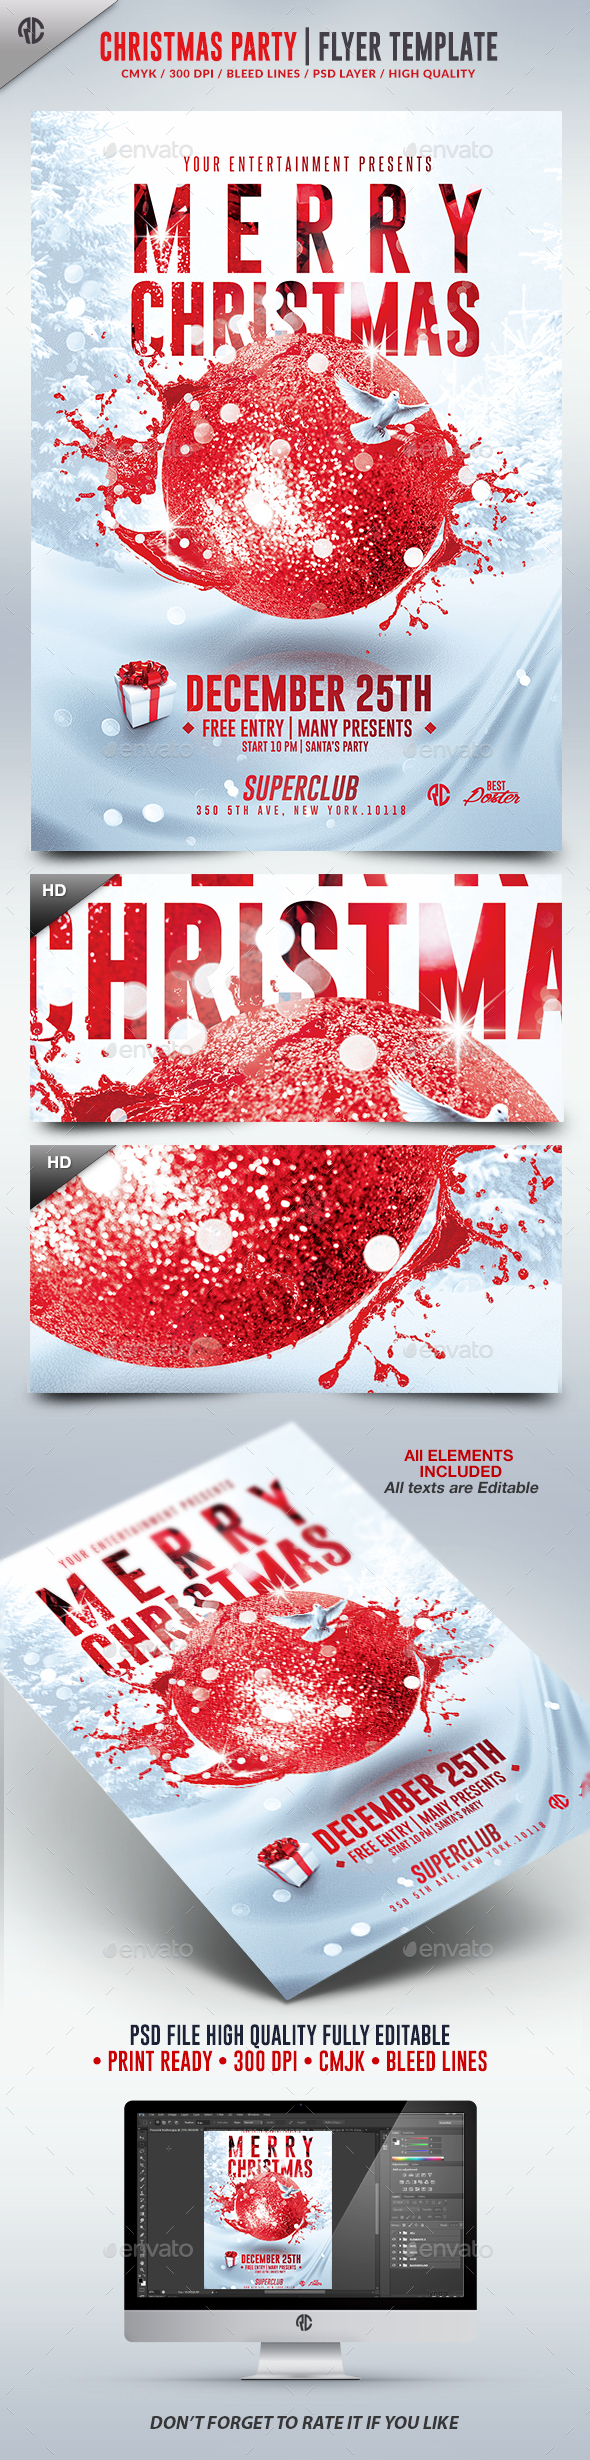 Christmas Party 2016 | Psd Flyer Template  - Flyers Print Templates